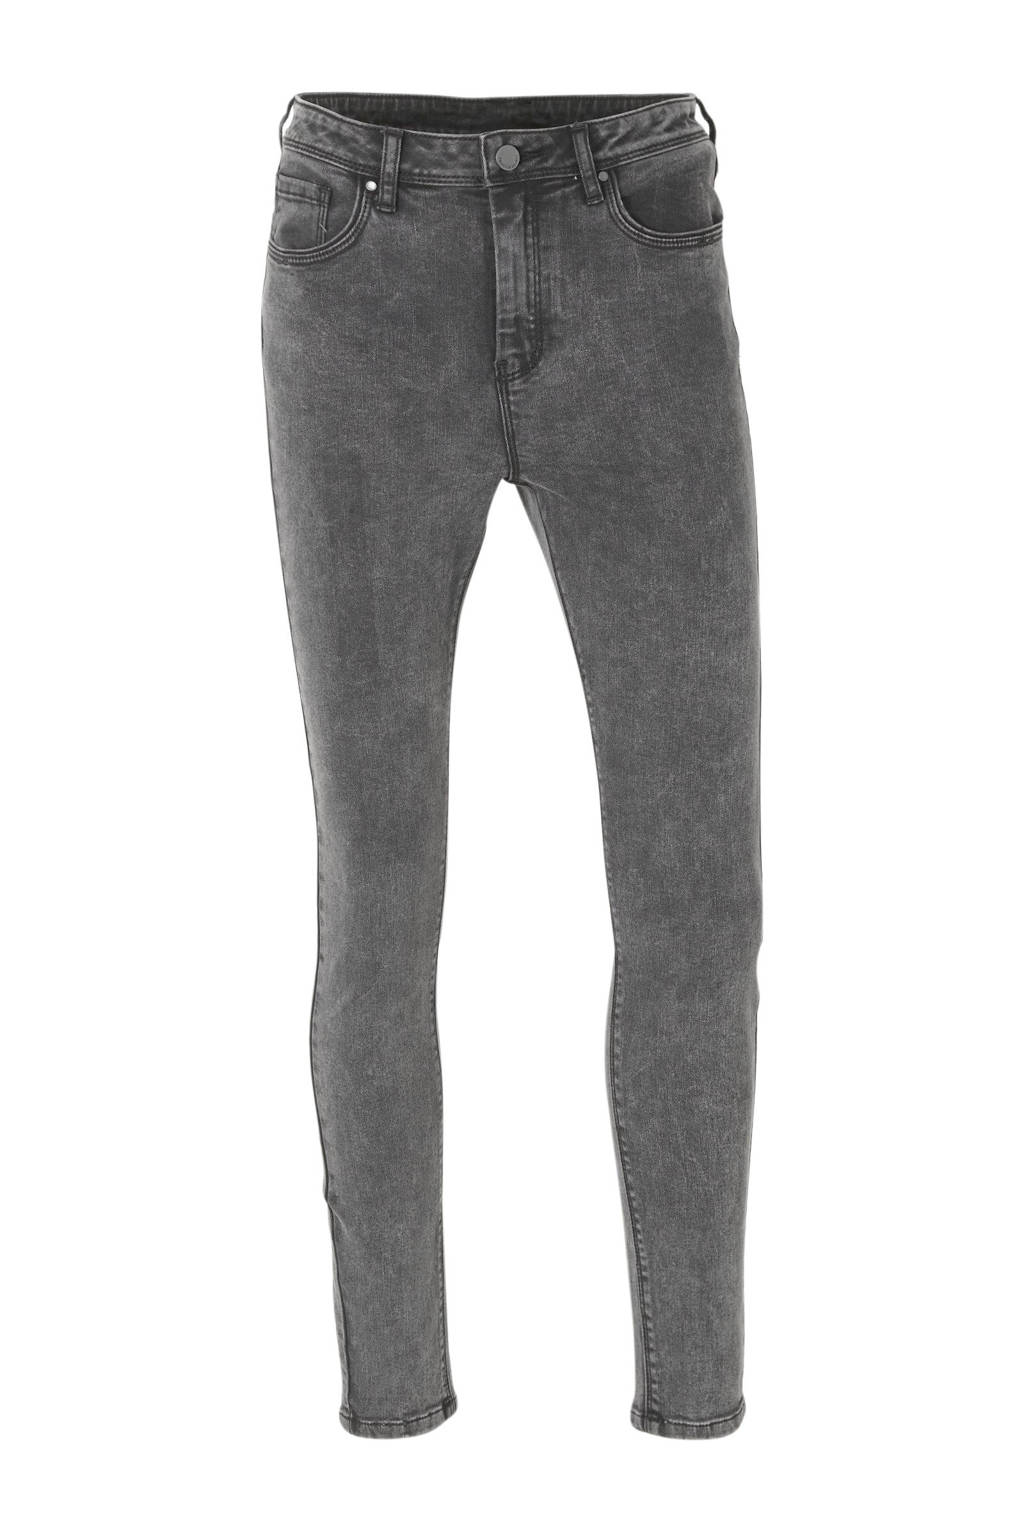 C&A Yessica high waist skinny jeans donkergrijs, Donkergrijs